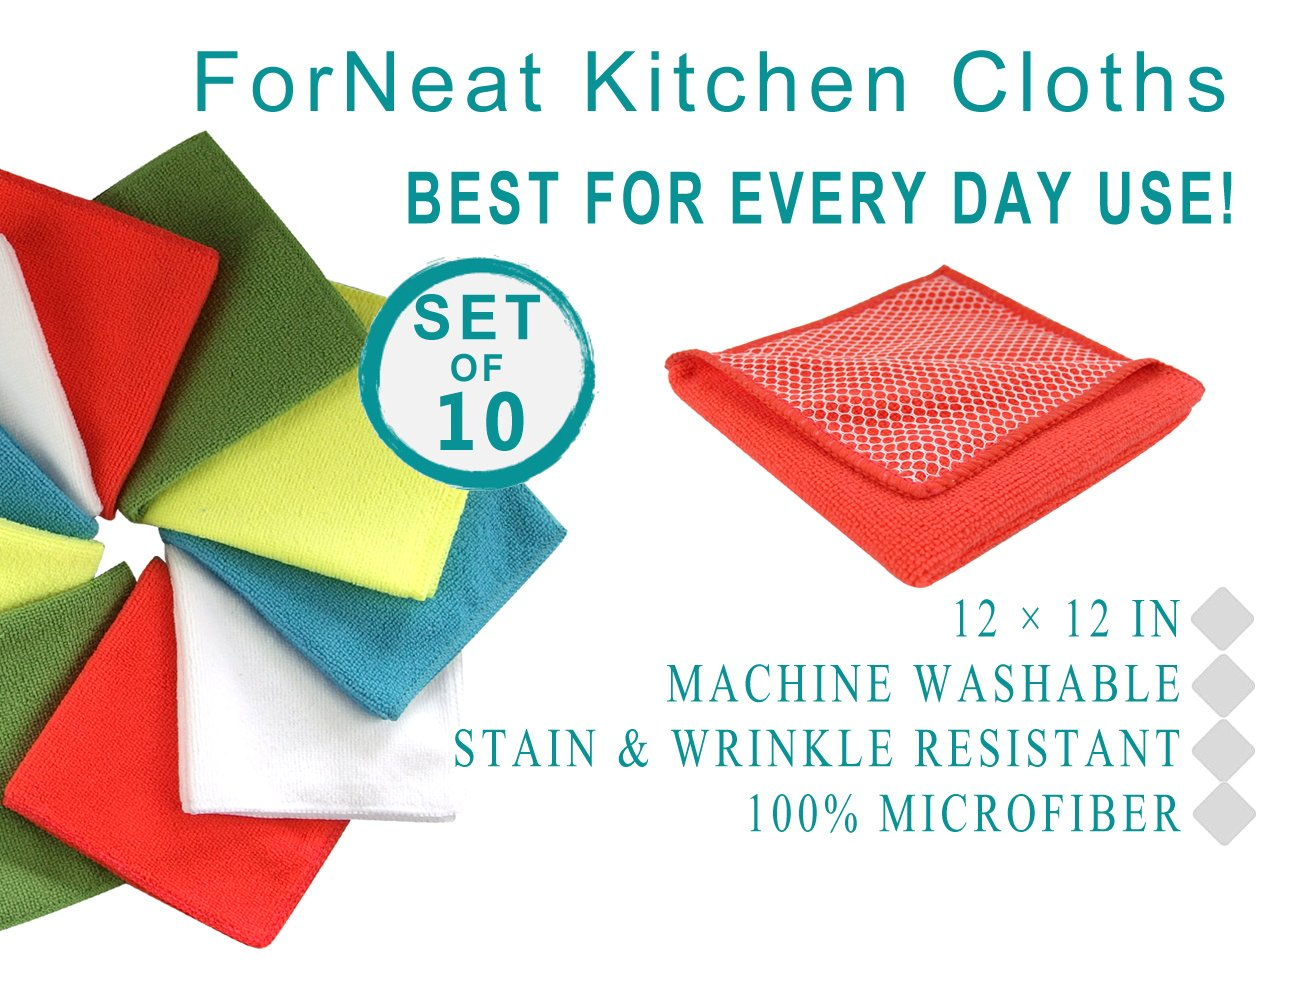 ForNeat Dish Cloths Microfiber Kitchen Towels, Dish Rags Scrub Side, HIGH ABSORBENT, LINT-FREE, STREAK-FREE 12 12-Inch, 10-Pack by ForNeat (Image #2)